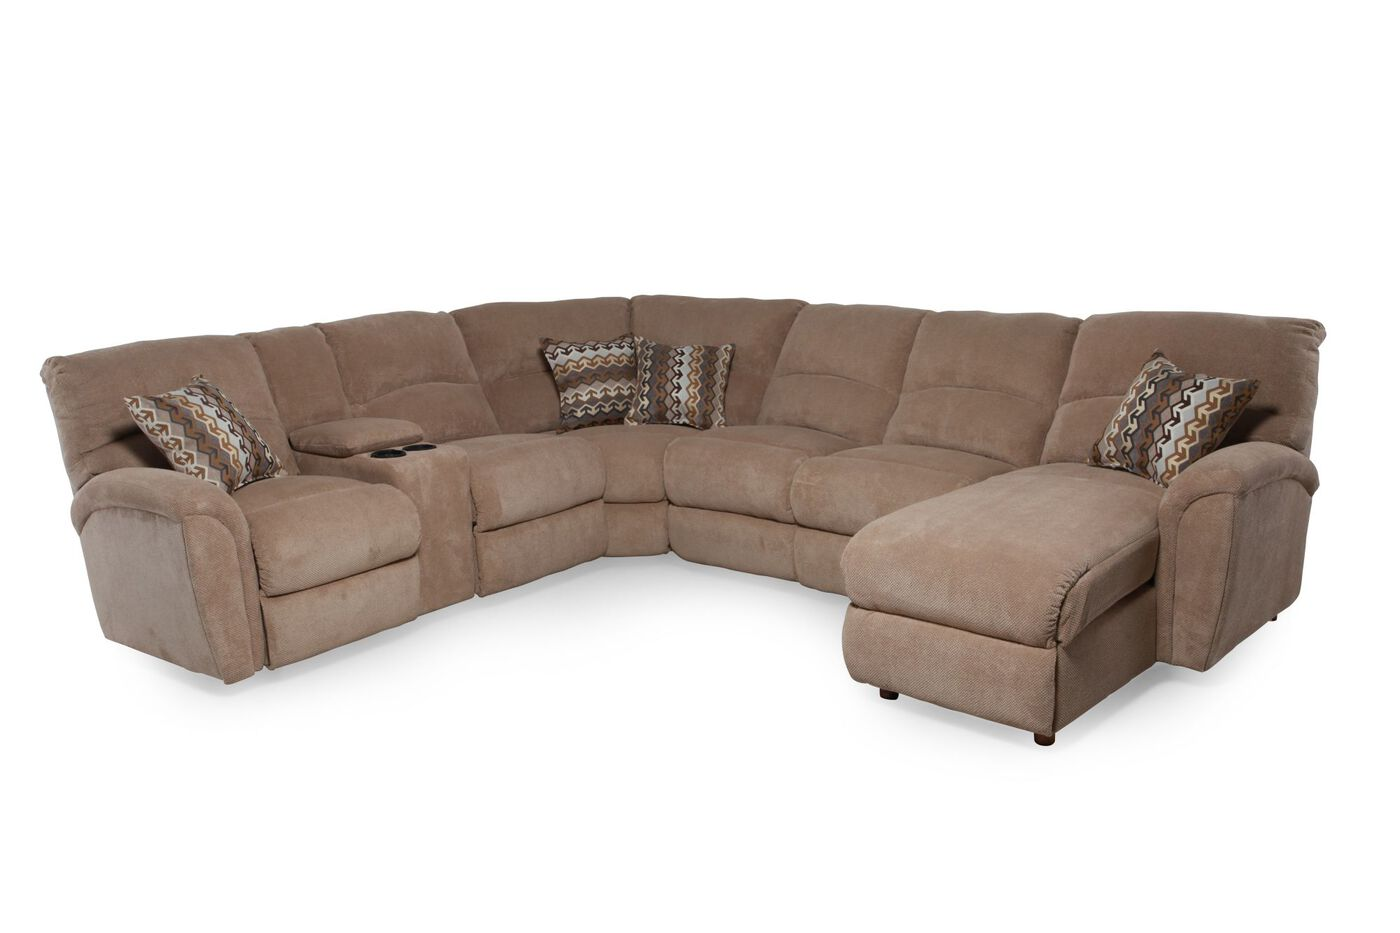 Mathis brothers sectional sofas teachfamiliesorg for Sectional sofas mathis brothers